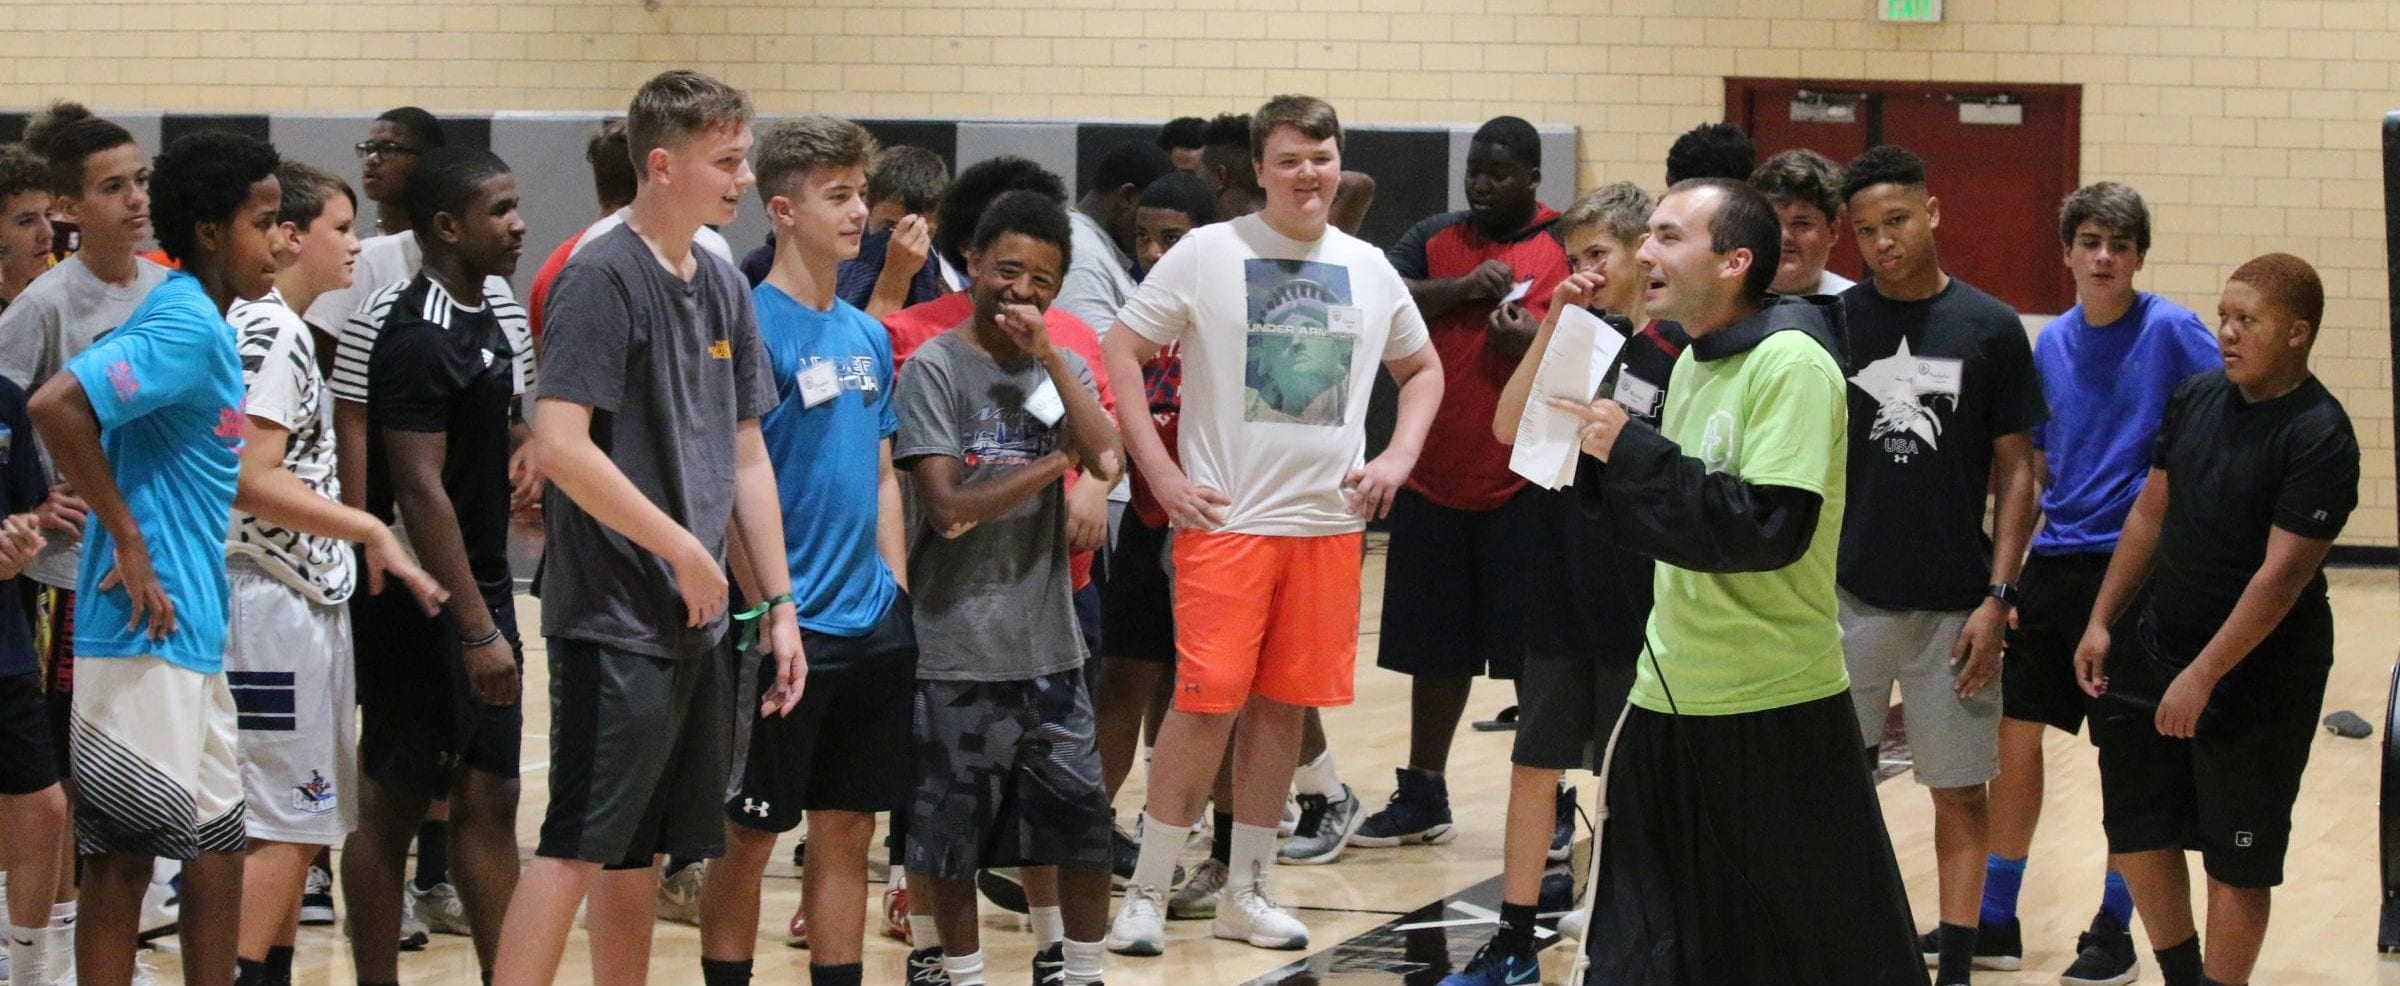 Franciscan Youth Ministry